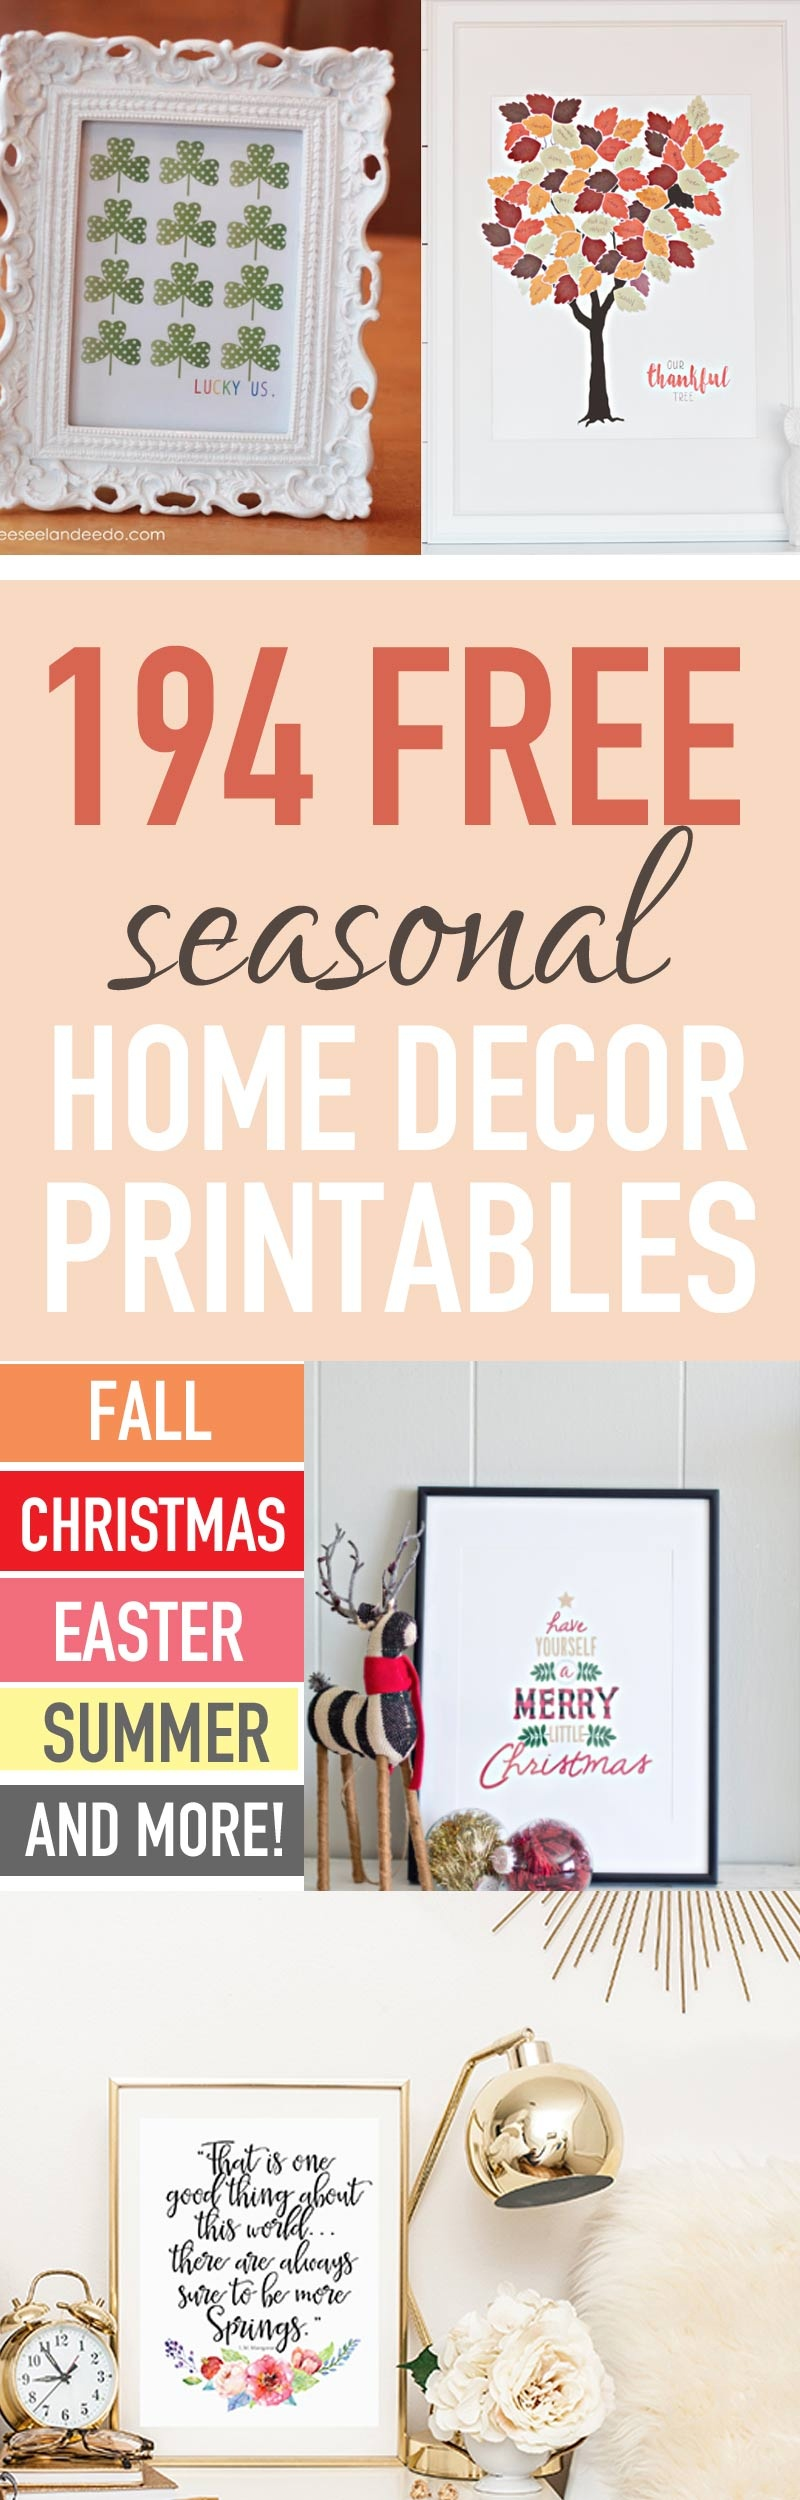 Decorate Your Home Seasonally For Free (250+ Free Home Decor - Free Printables For Home Decor